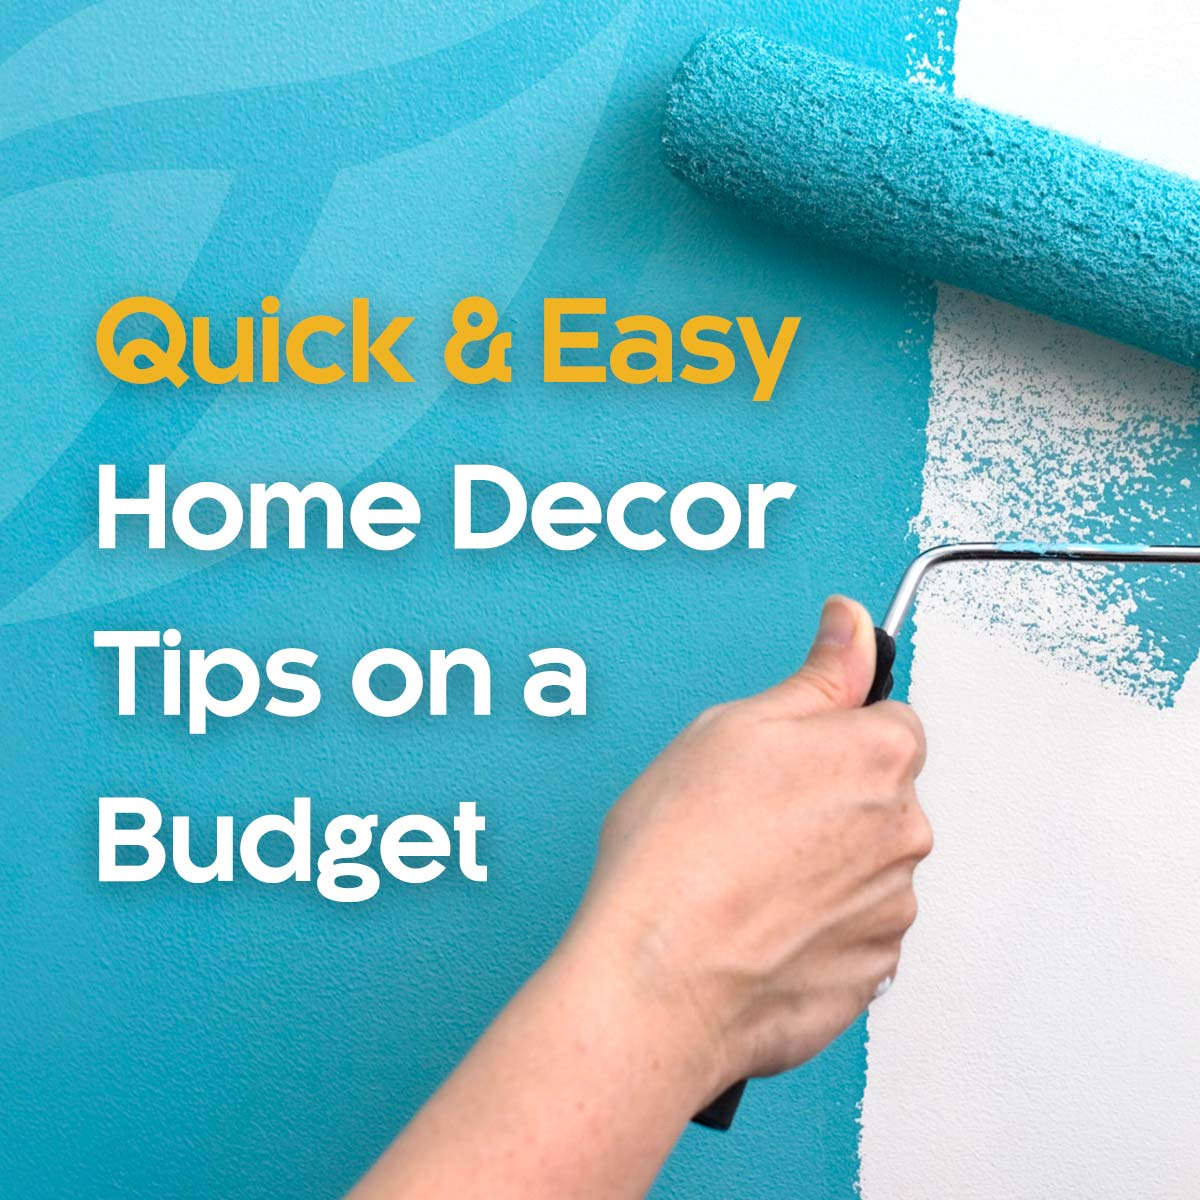 Quick and Easy Home Décor Tips on a Budget